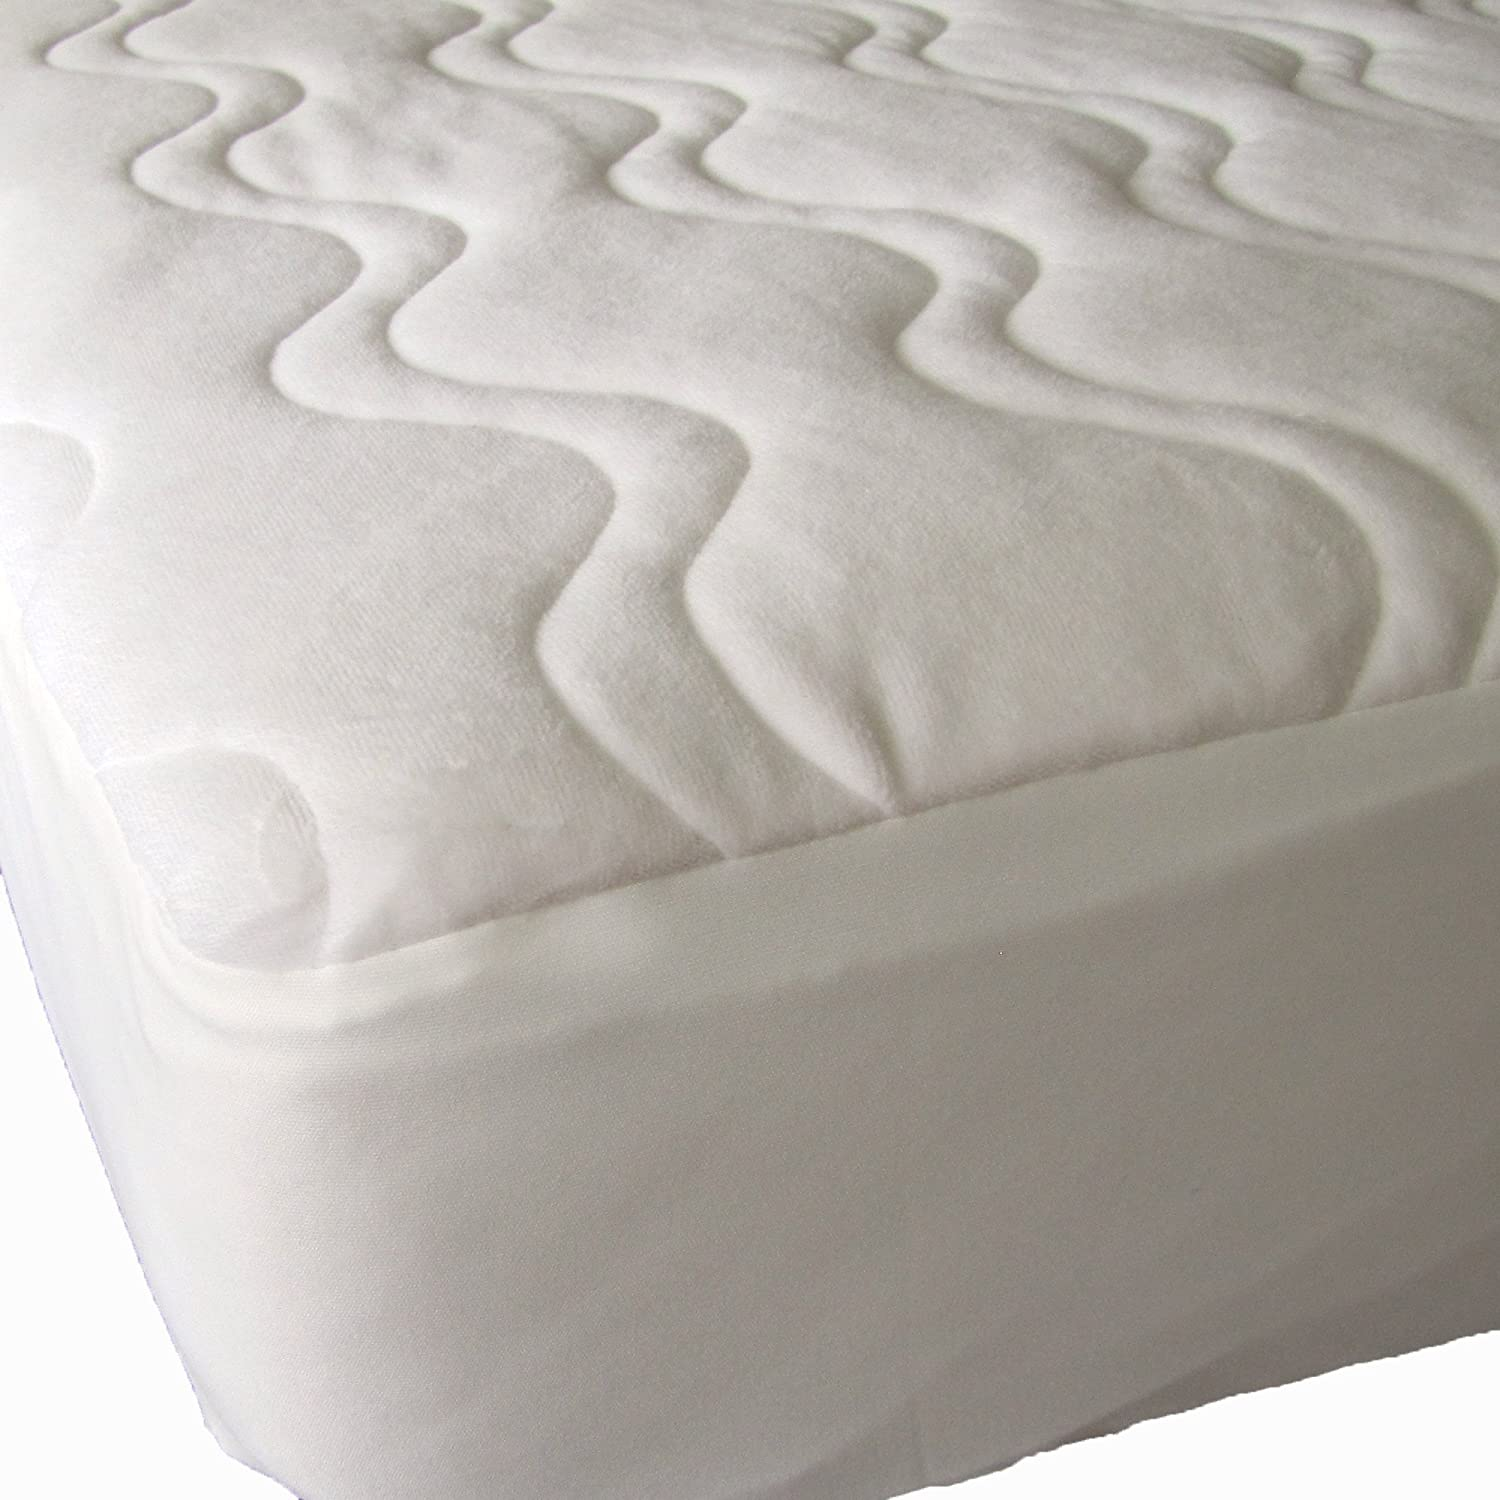 Amazon 40 Winks Quilted Organic Cotton Velour Mattress Pad